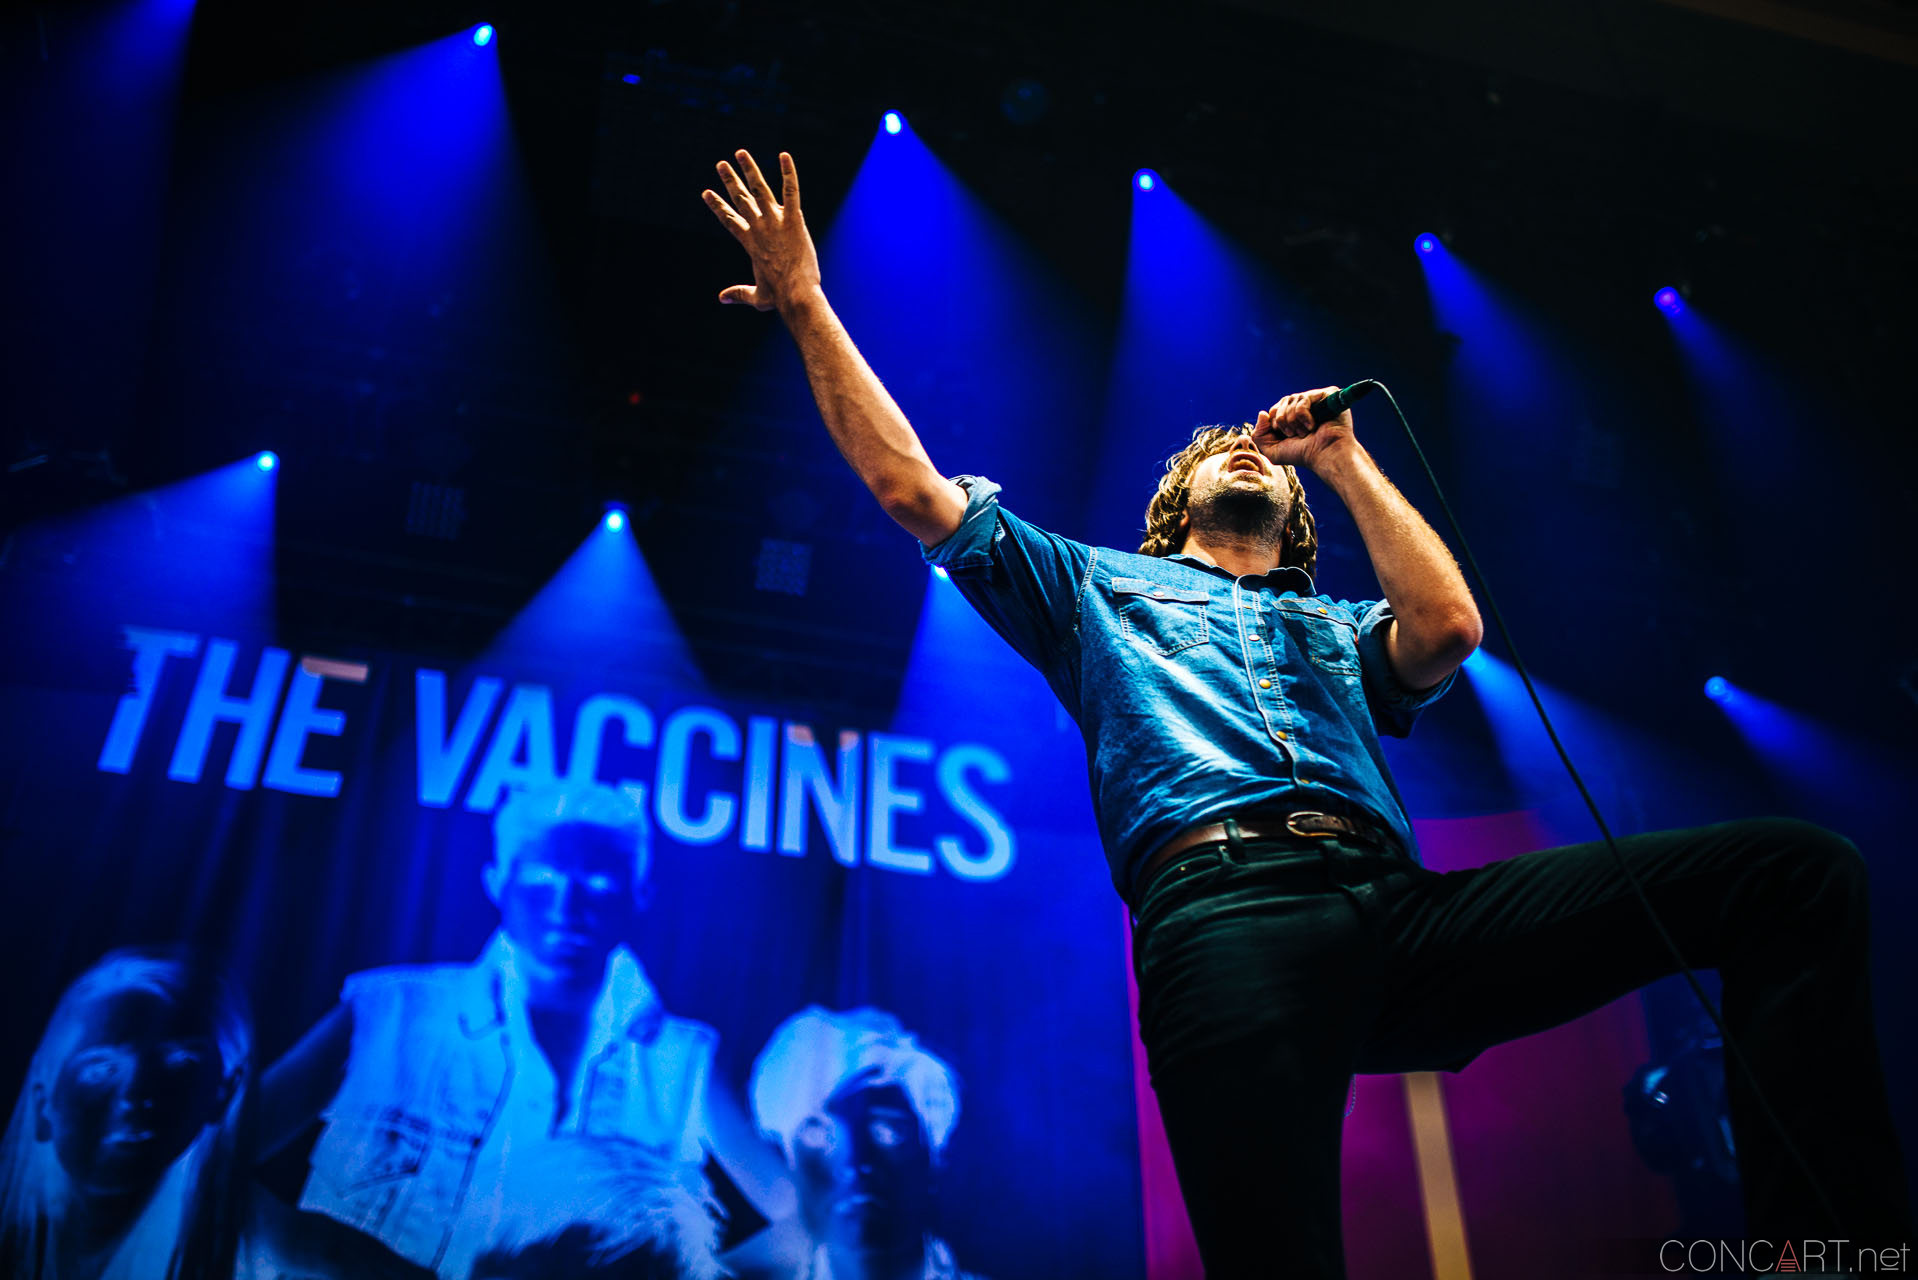 The Vaccines photo by Sean Molin 12